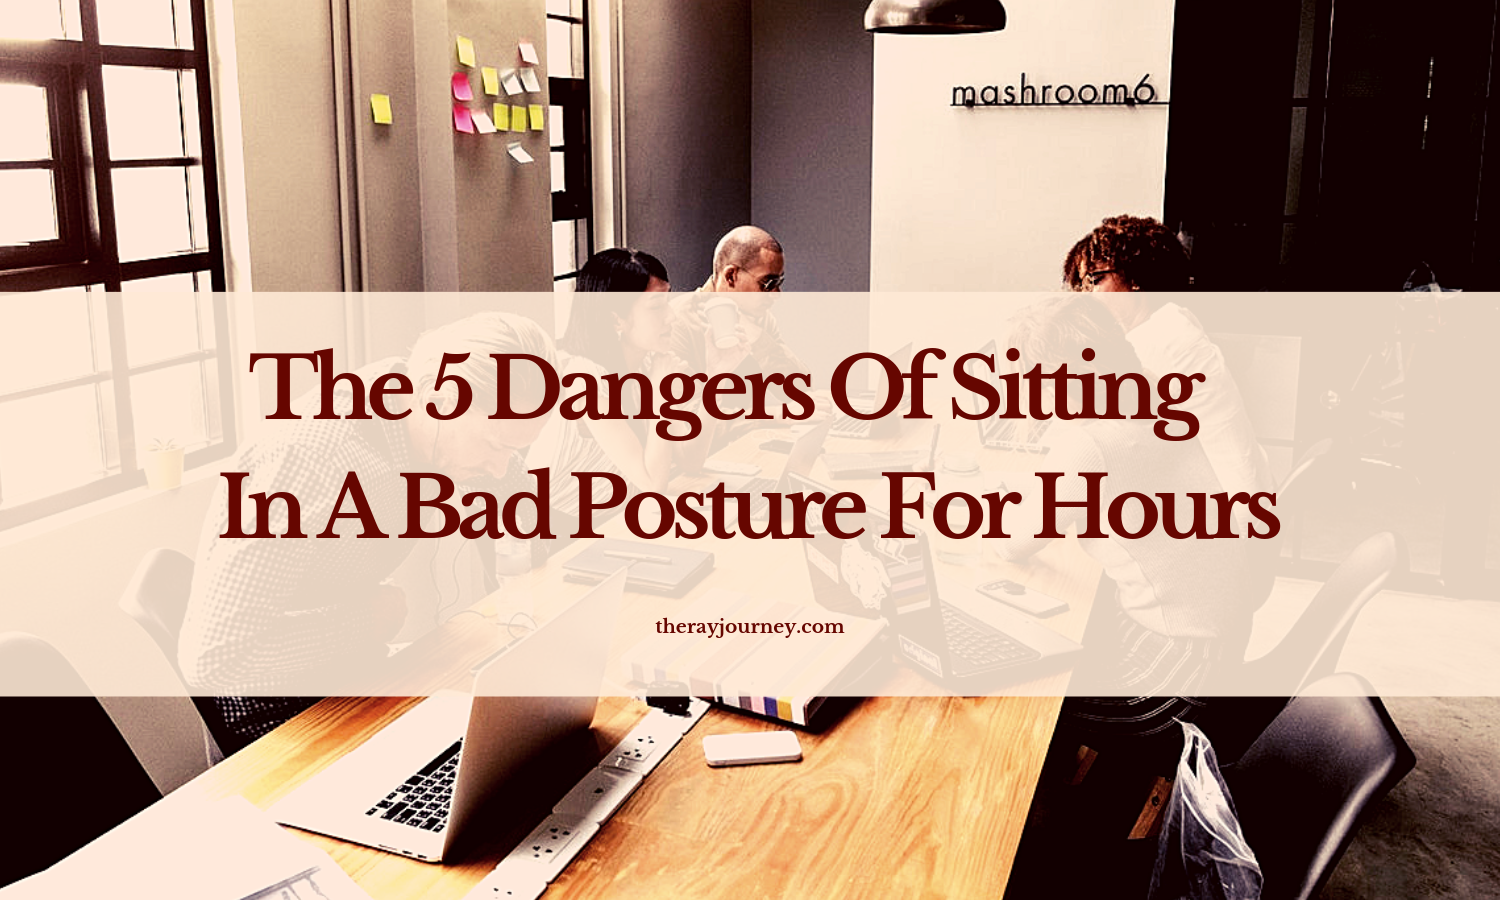 the dangers of sitting in a bad posture for hours. photo taken by rawpixel